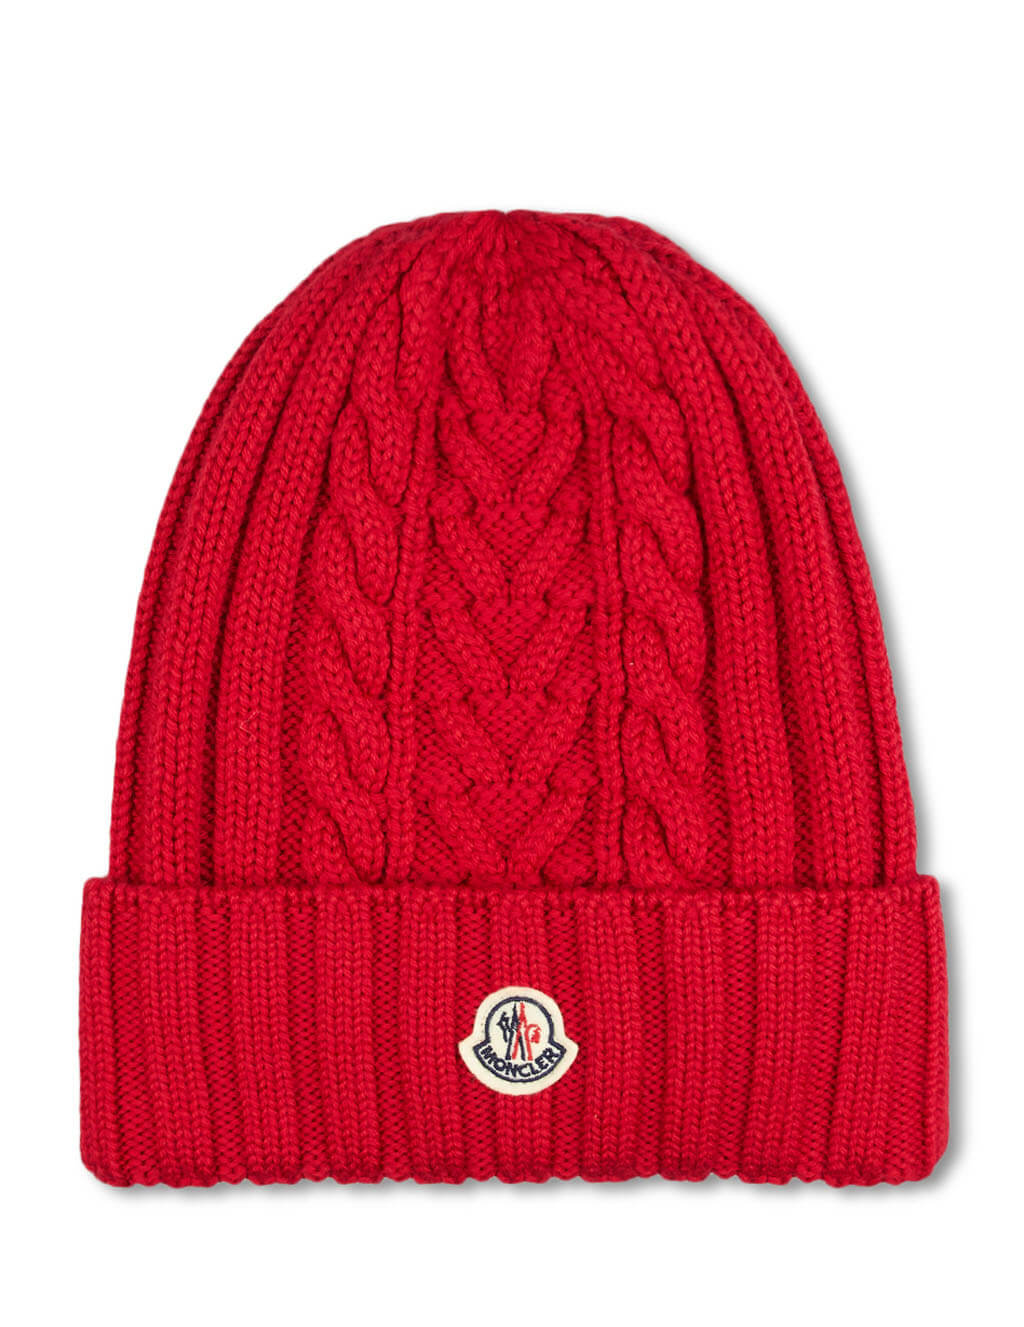 Moncler Women's Giulio Fashion Red Plaited Beanie 9963300A9146440